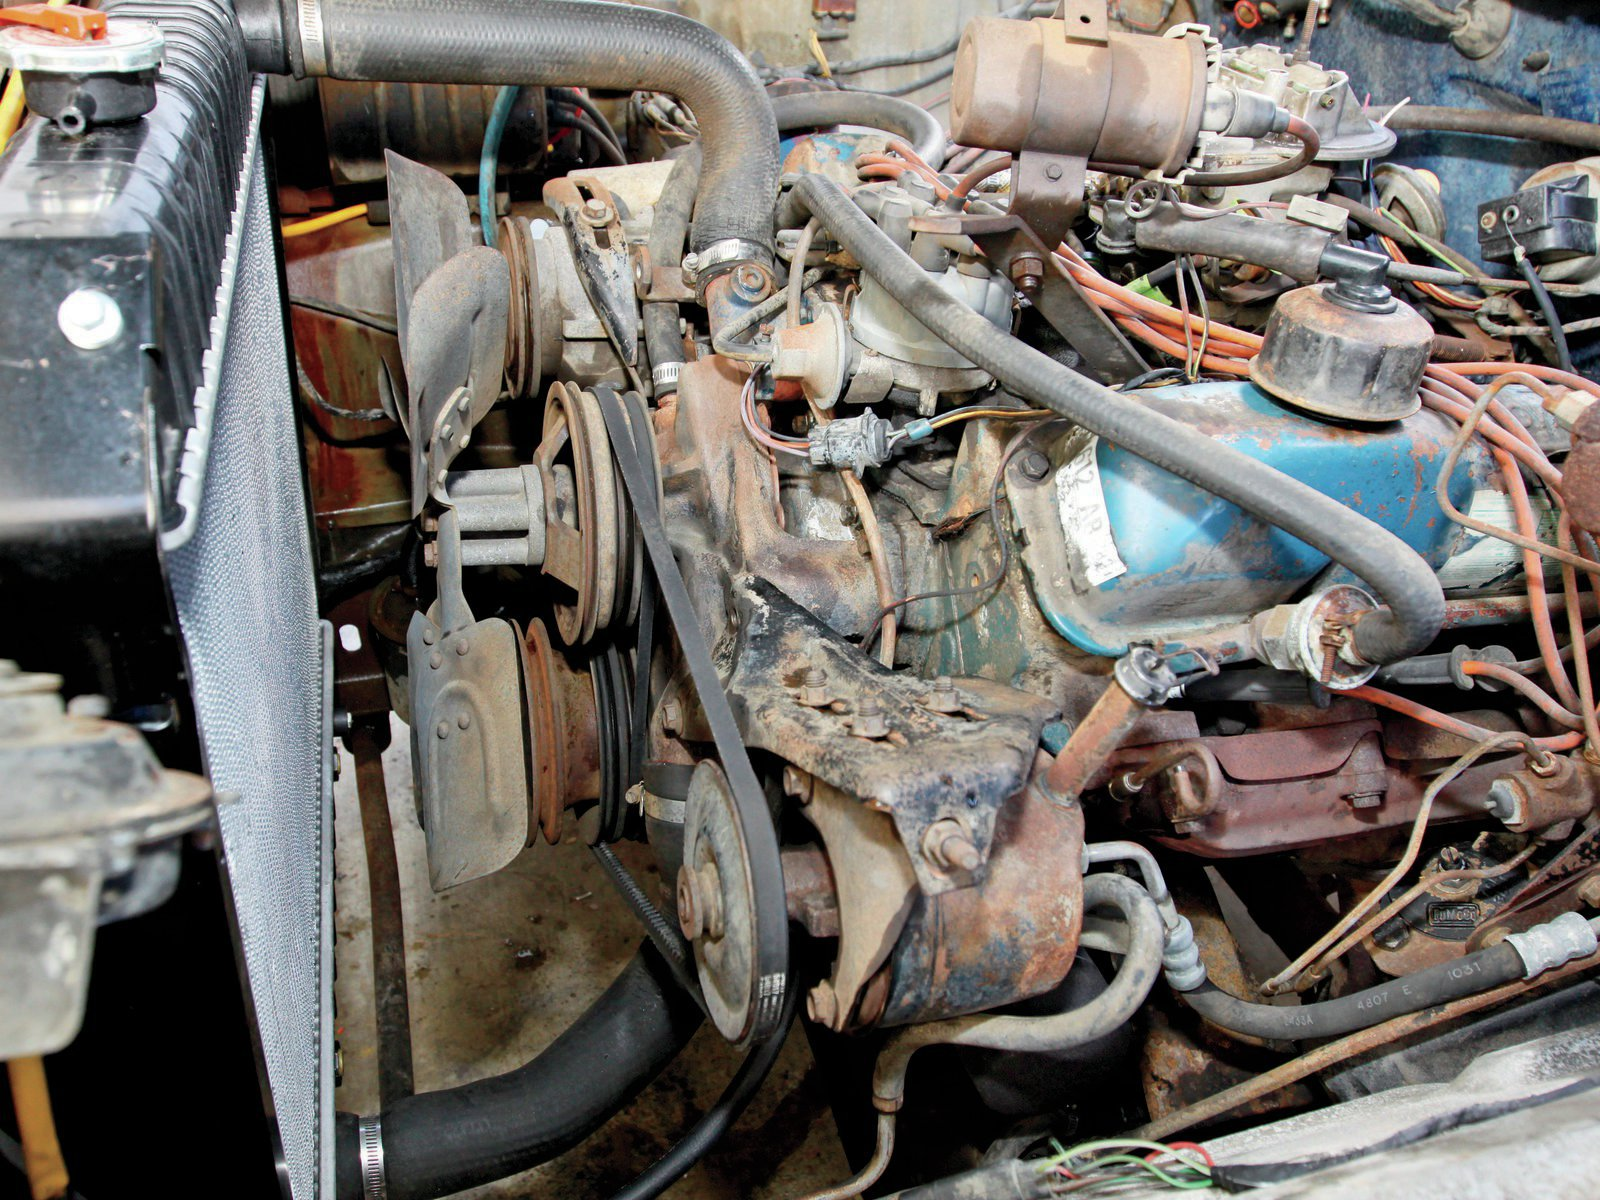 4. It's not revealed in the header installation instructions. All header installs begin by figuring out if the headers install from the top of the engine or from the bottom. The 360/390-inch Fords install from the bottom.